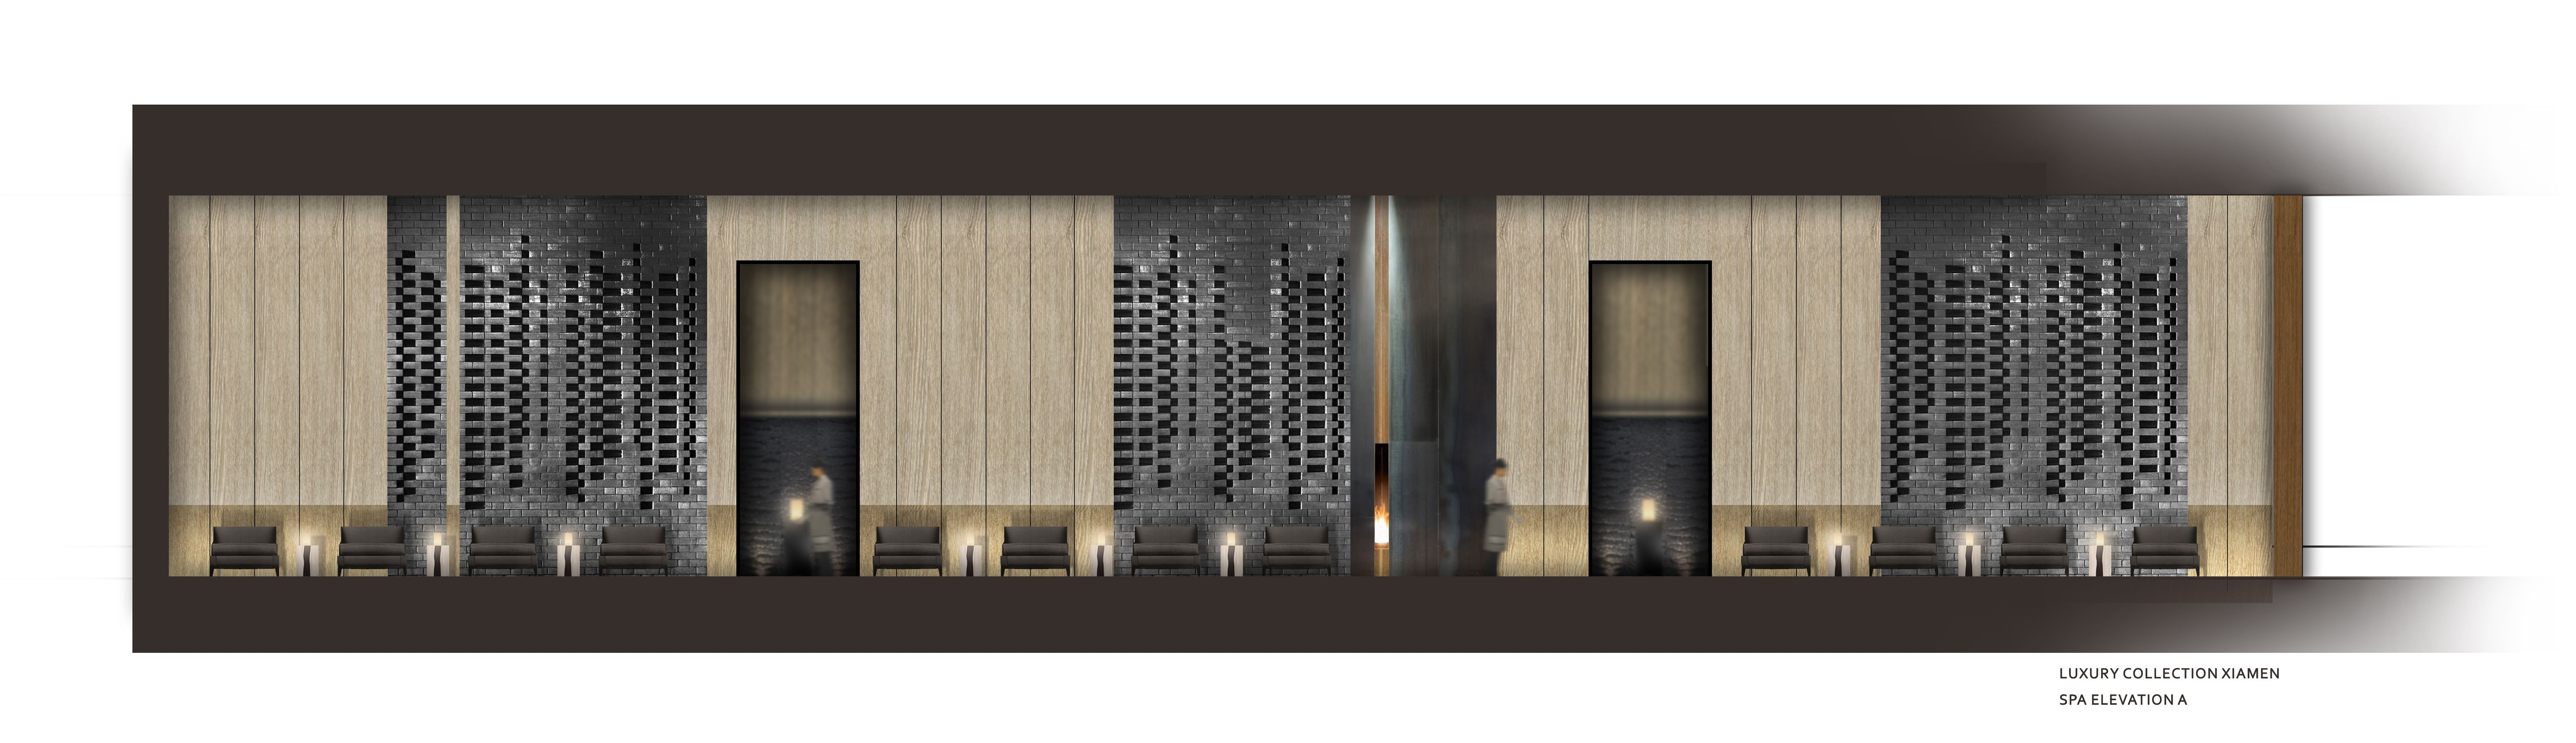 Interior Architecture · Hospitality Design · Rate:Color Elevation Price Is  160 250 USD 22handmade@gmail.com